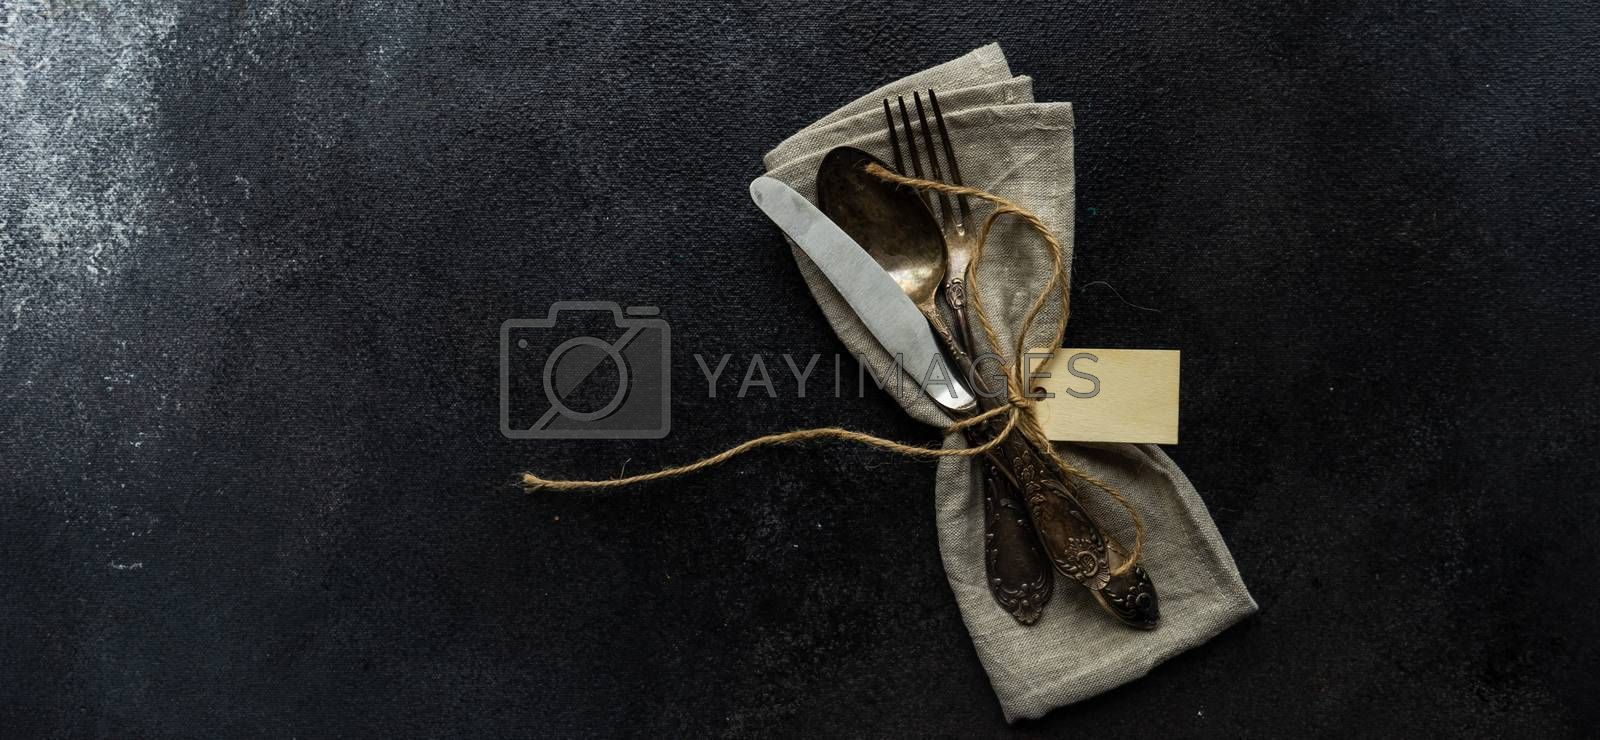 Table setting with cutlery and napkin on concrete background with copy space